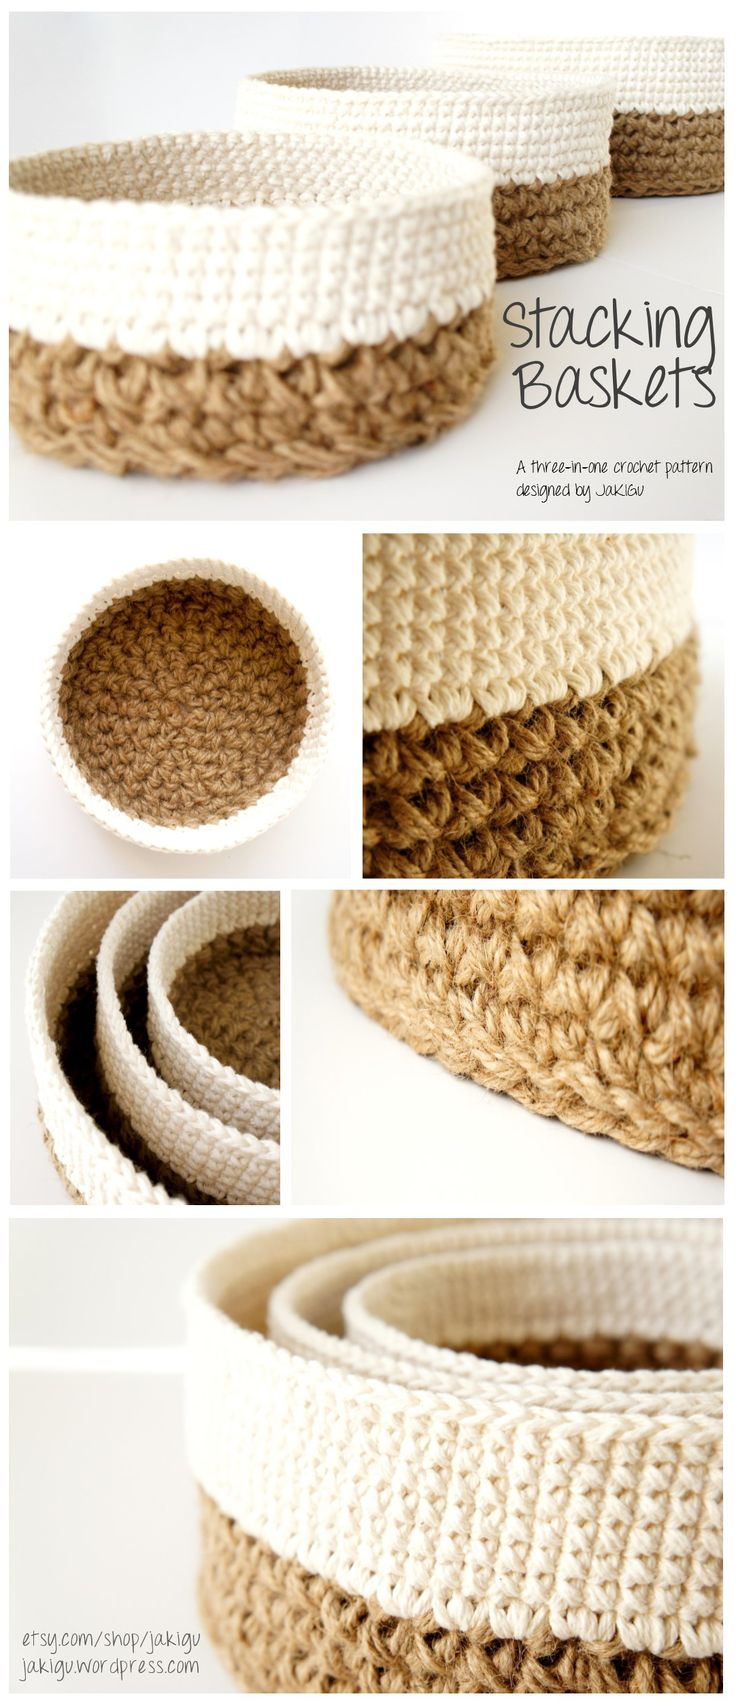 Crochet pattern for these very, very popularstacking baskets worked in jute and cottonis available here. It's more than a pattern. It's twenty beautifully organized pages with tips, photo tutoria...